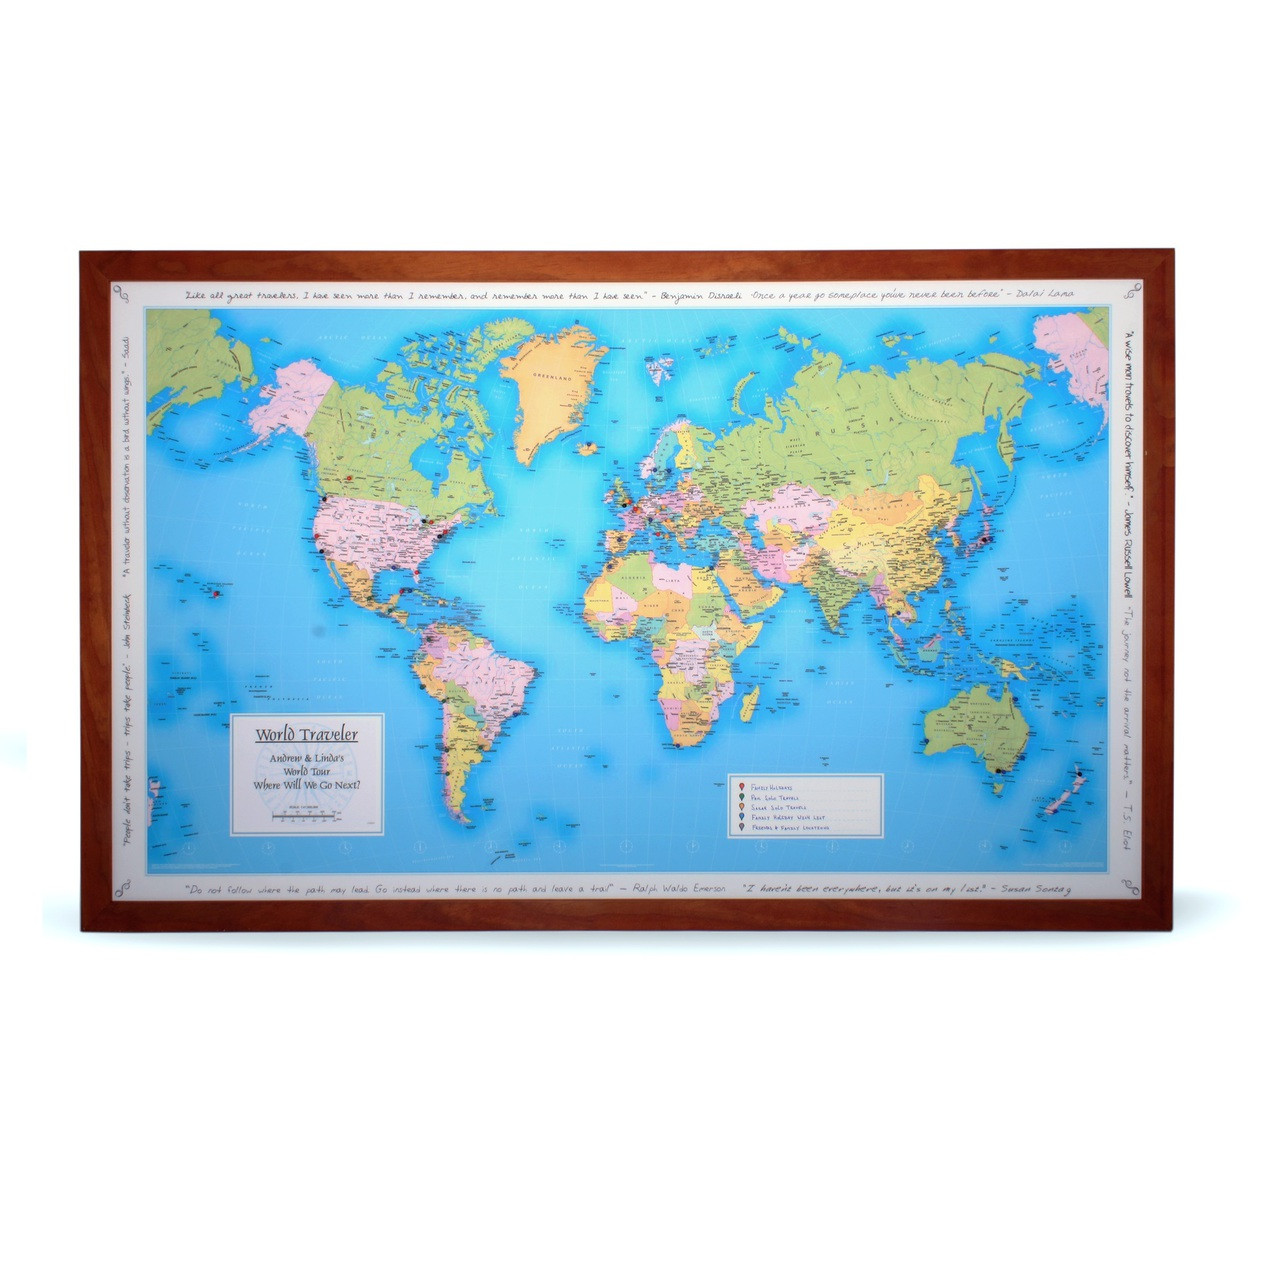 Personalized World Travel Map Framed and Ready to Hang – Framed World Travel Map